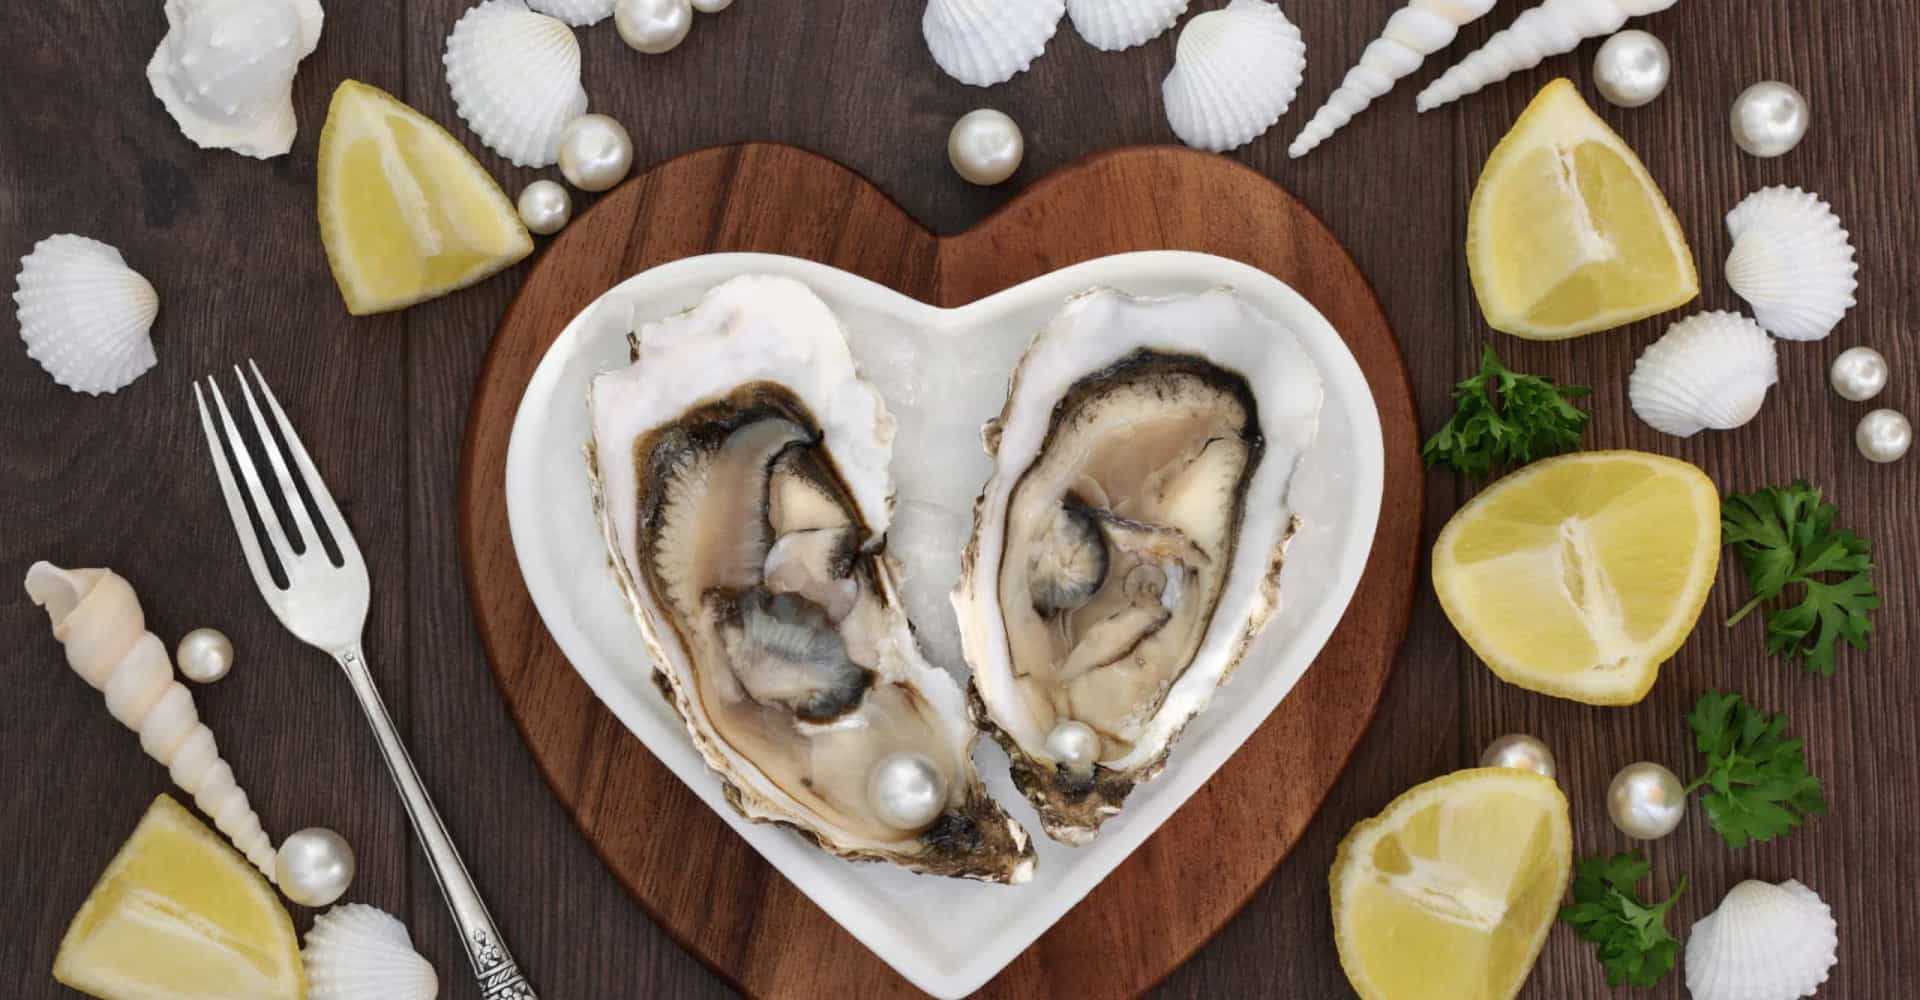 Natural aphrodisiacs from around the world you'll want to try